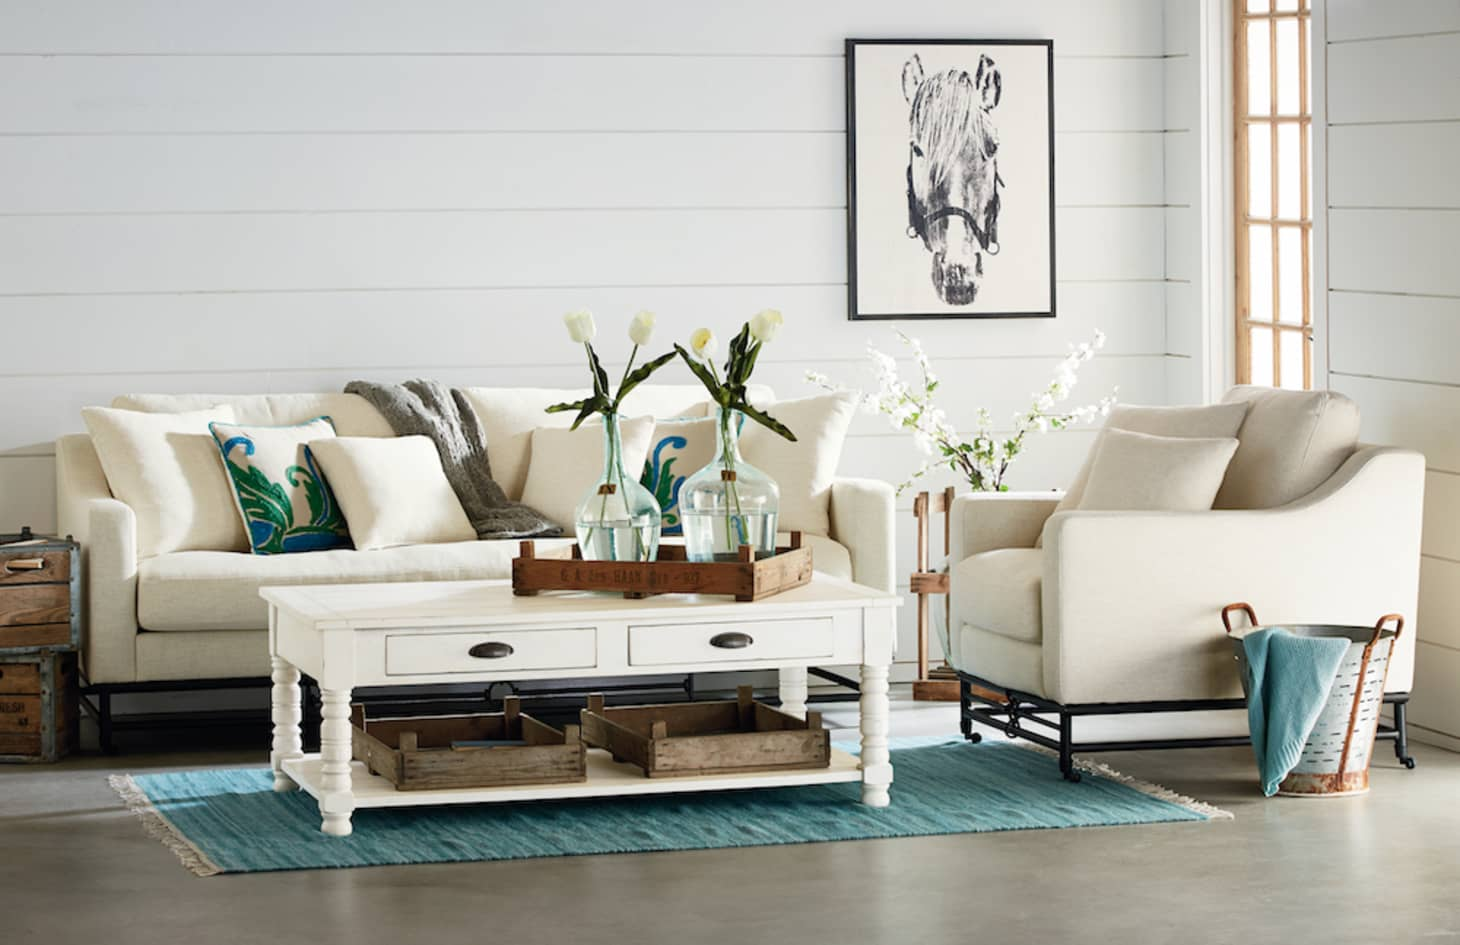 Magnolia Home Joanna Gaines S New Furniture Line In 6 Styles